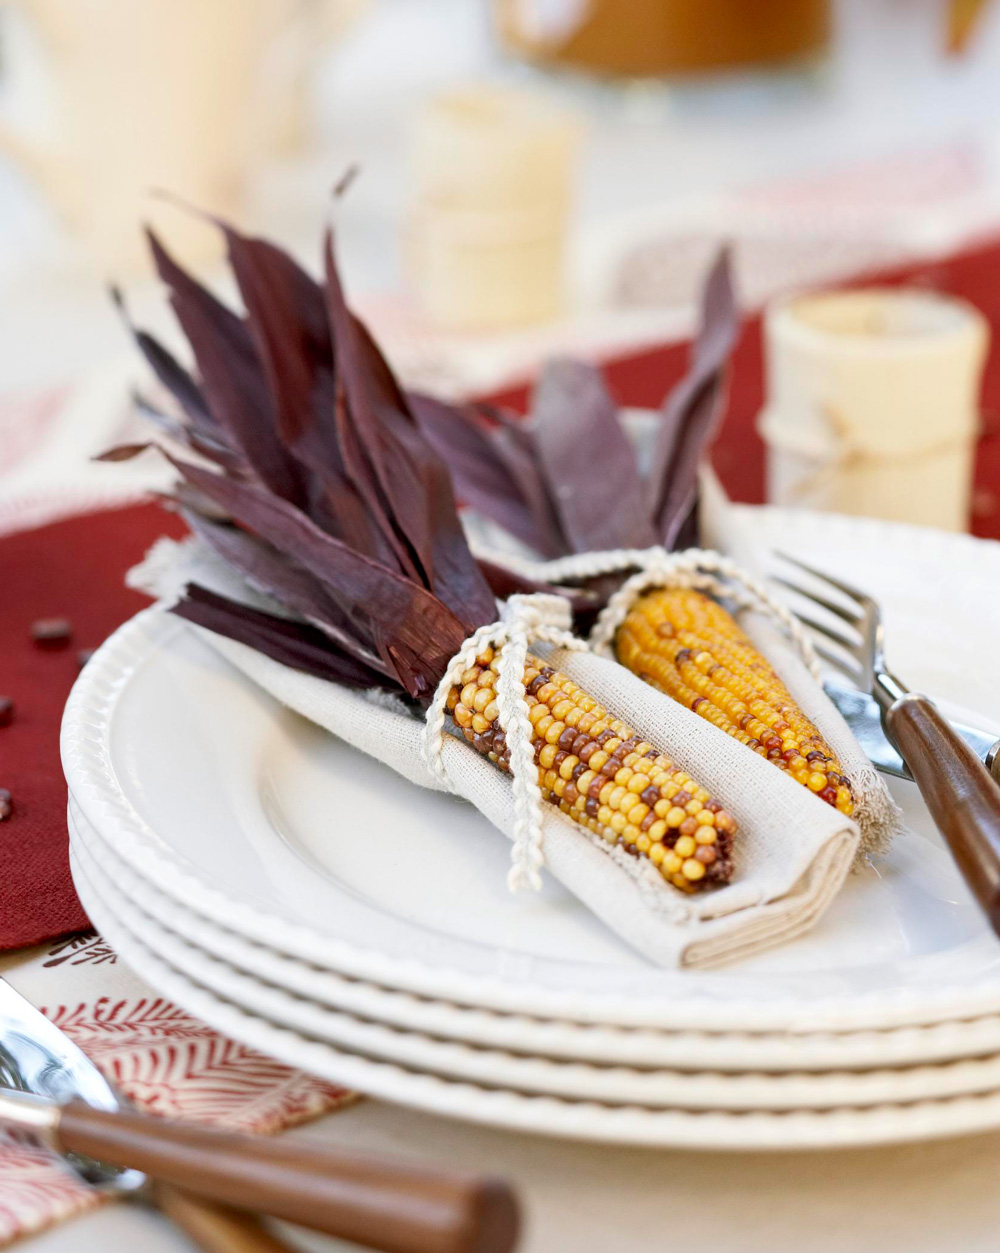 Corn place setting